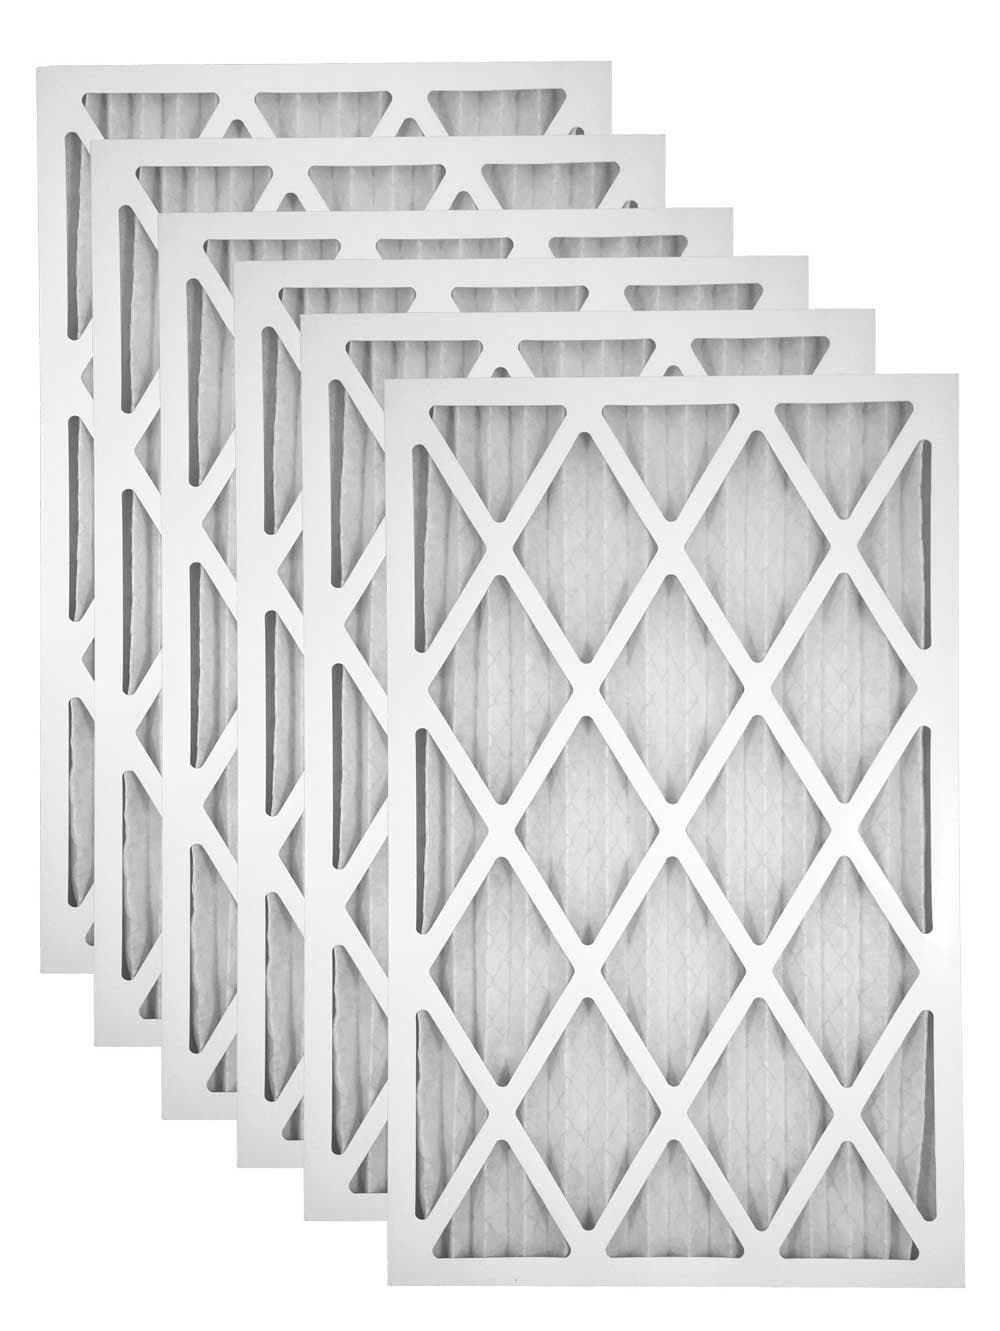 14x30x1 Merv 11 AC Furnace Filter - Case of 6